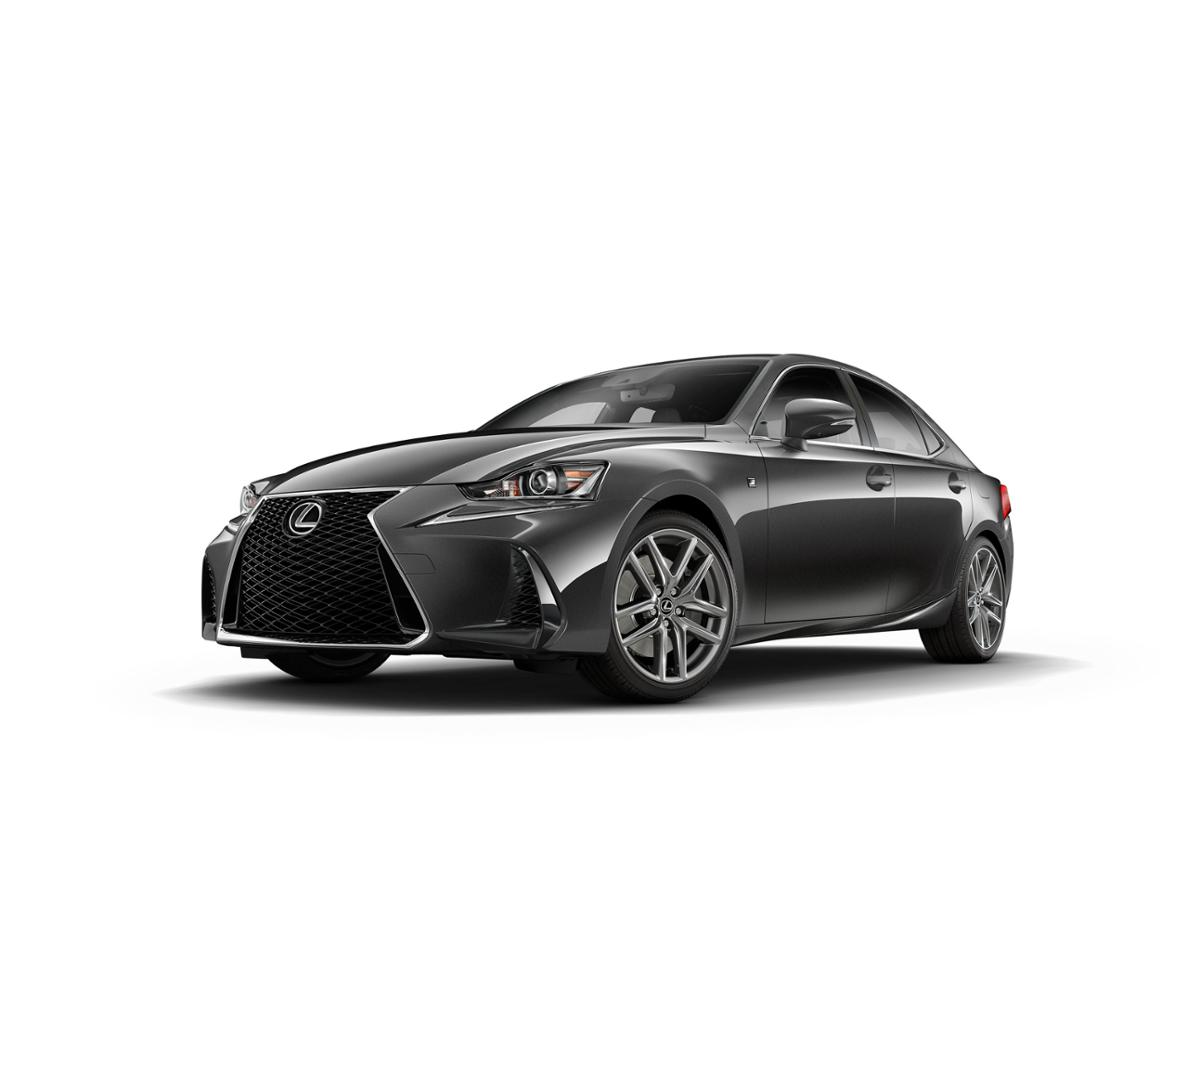 2017 Lexus IS 300 Vehicle Photo in Danvers, MA 01923